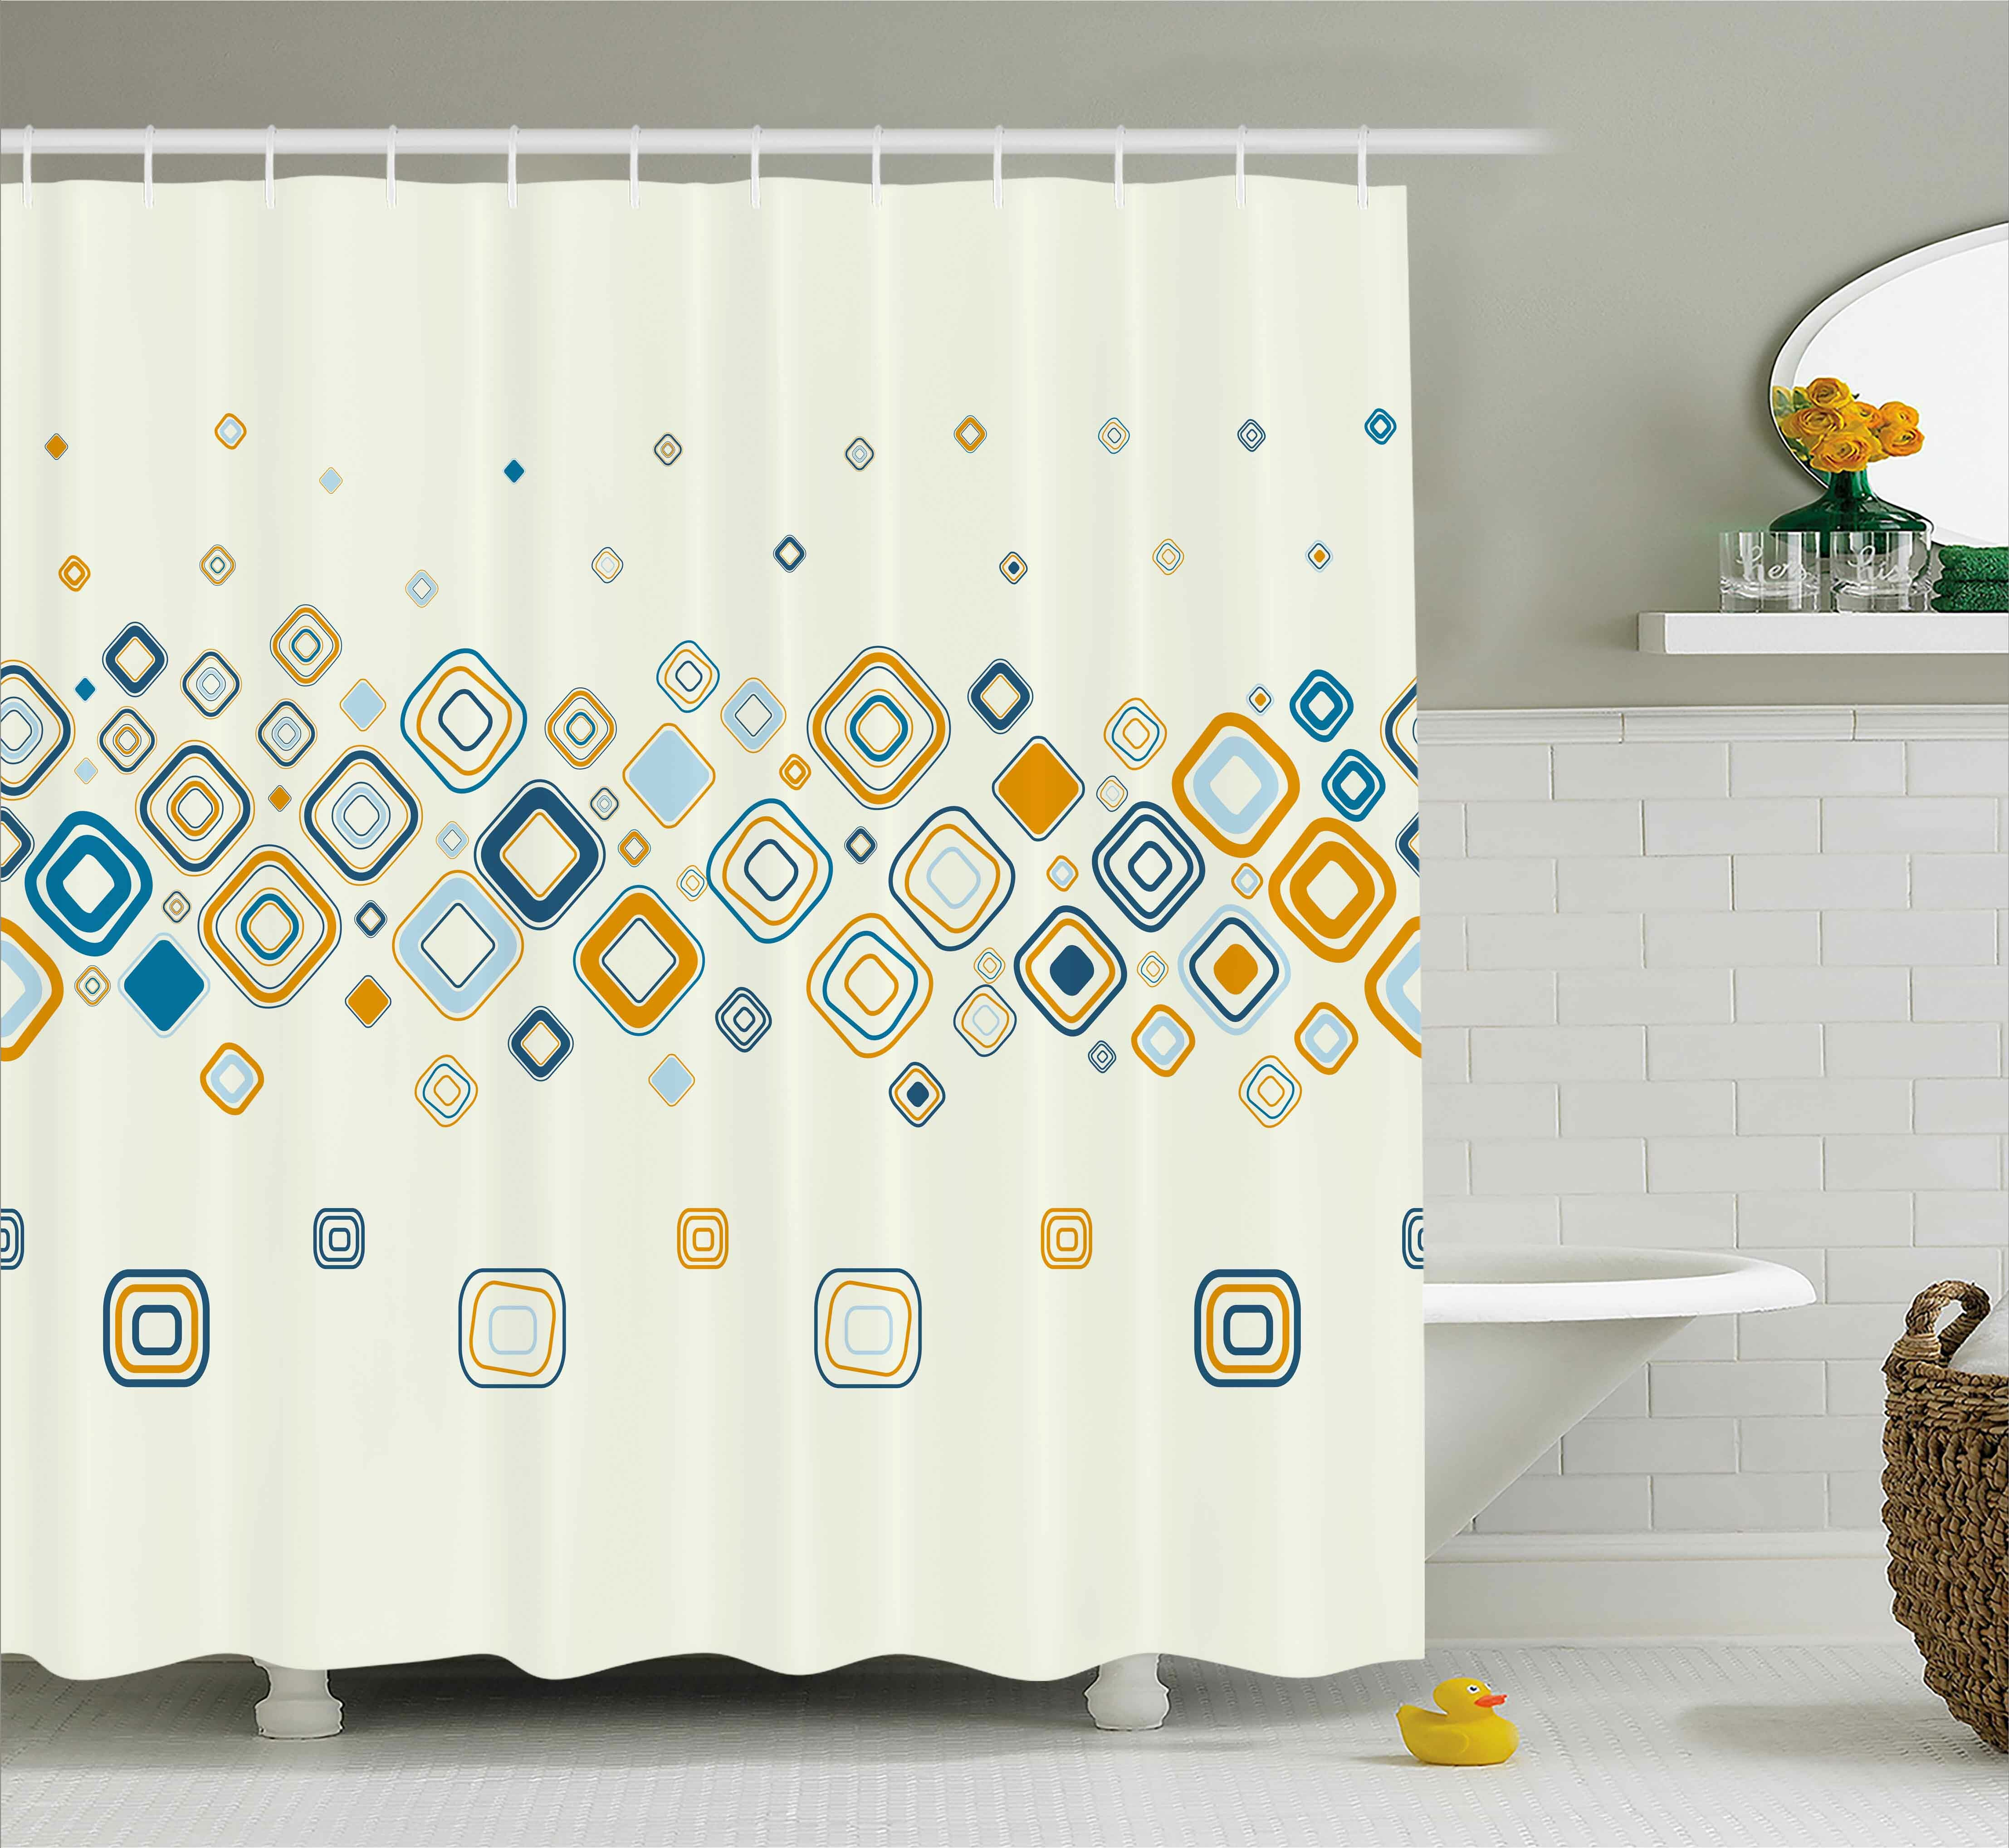 Ebern Designs Addie Modern Vector Illustration Of Stylish Repeating Geometric Shapes Pattern Shower Curtain